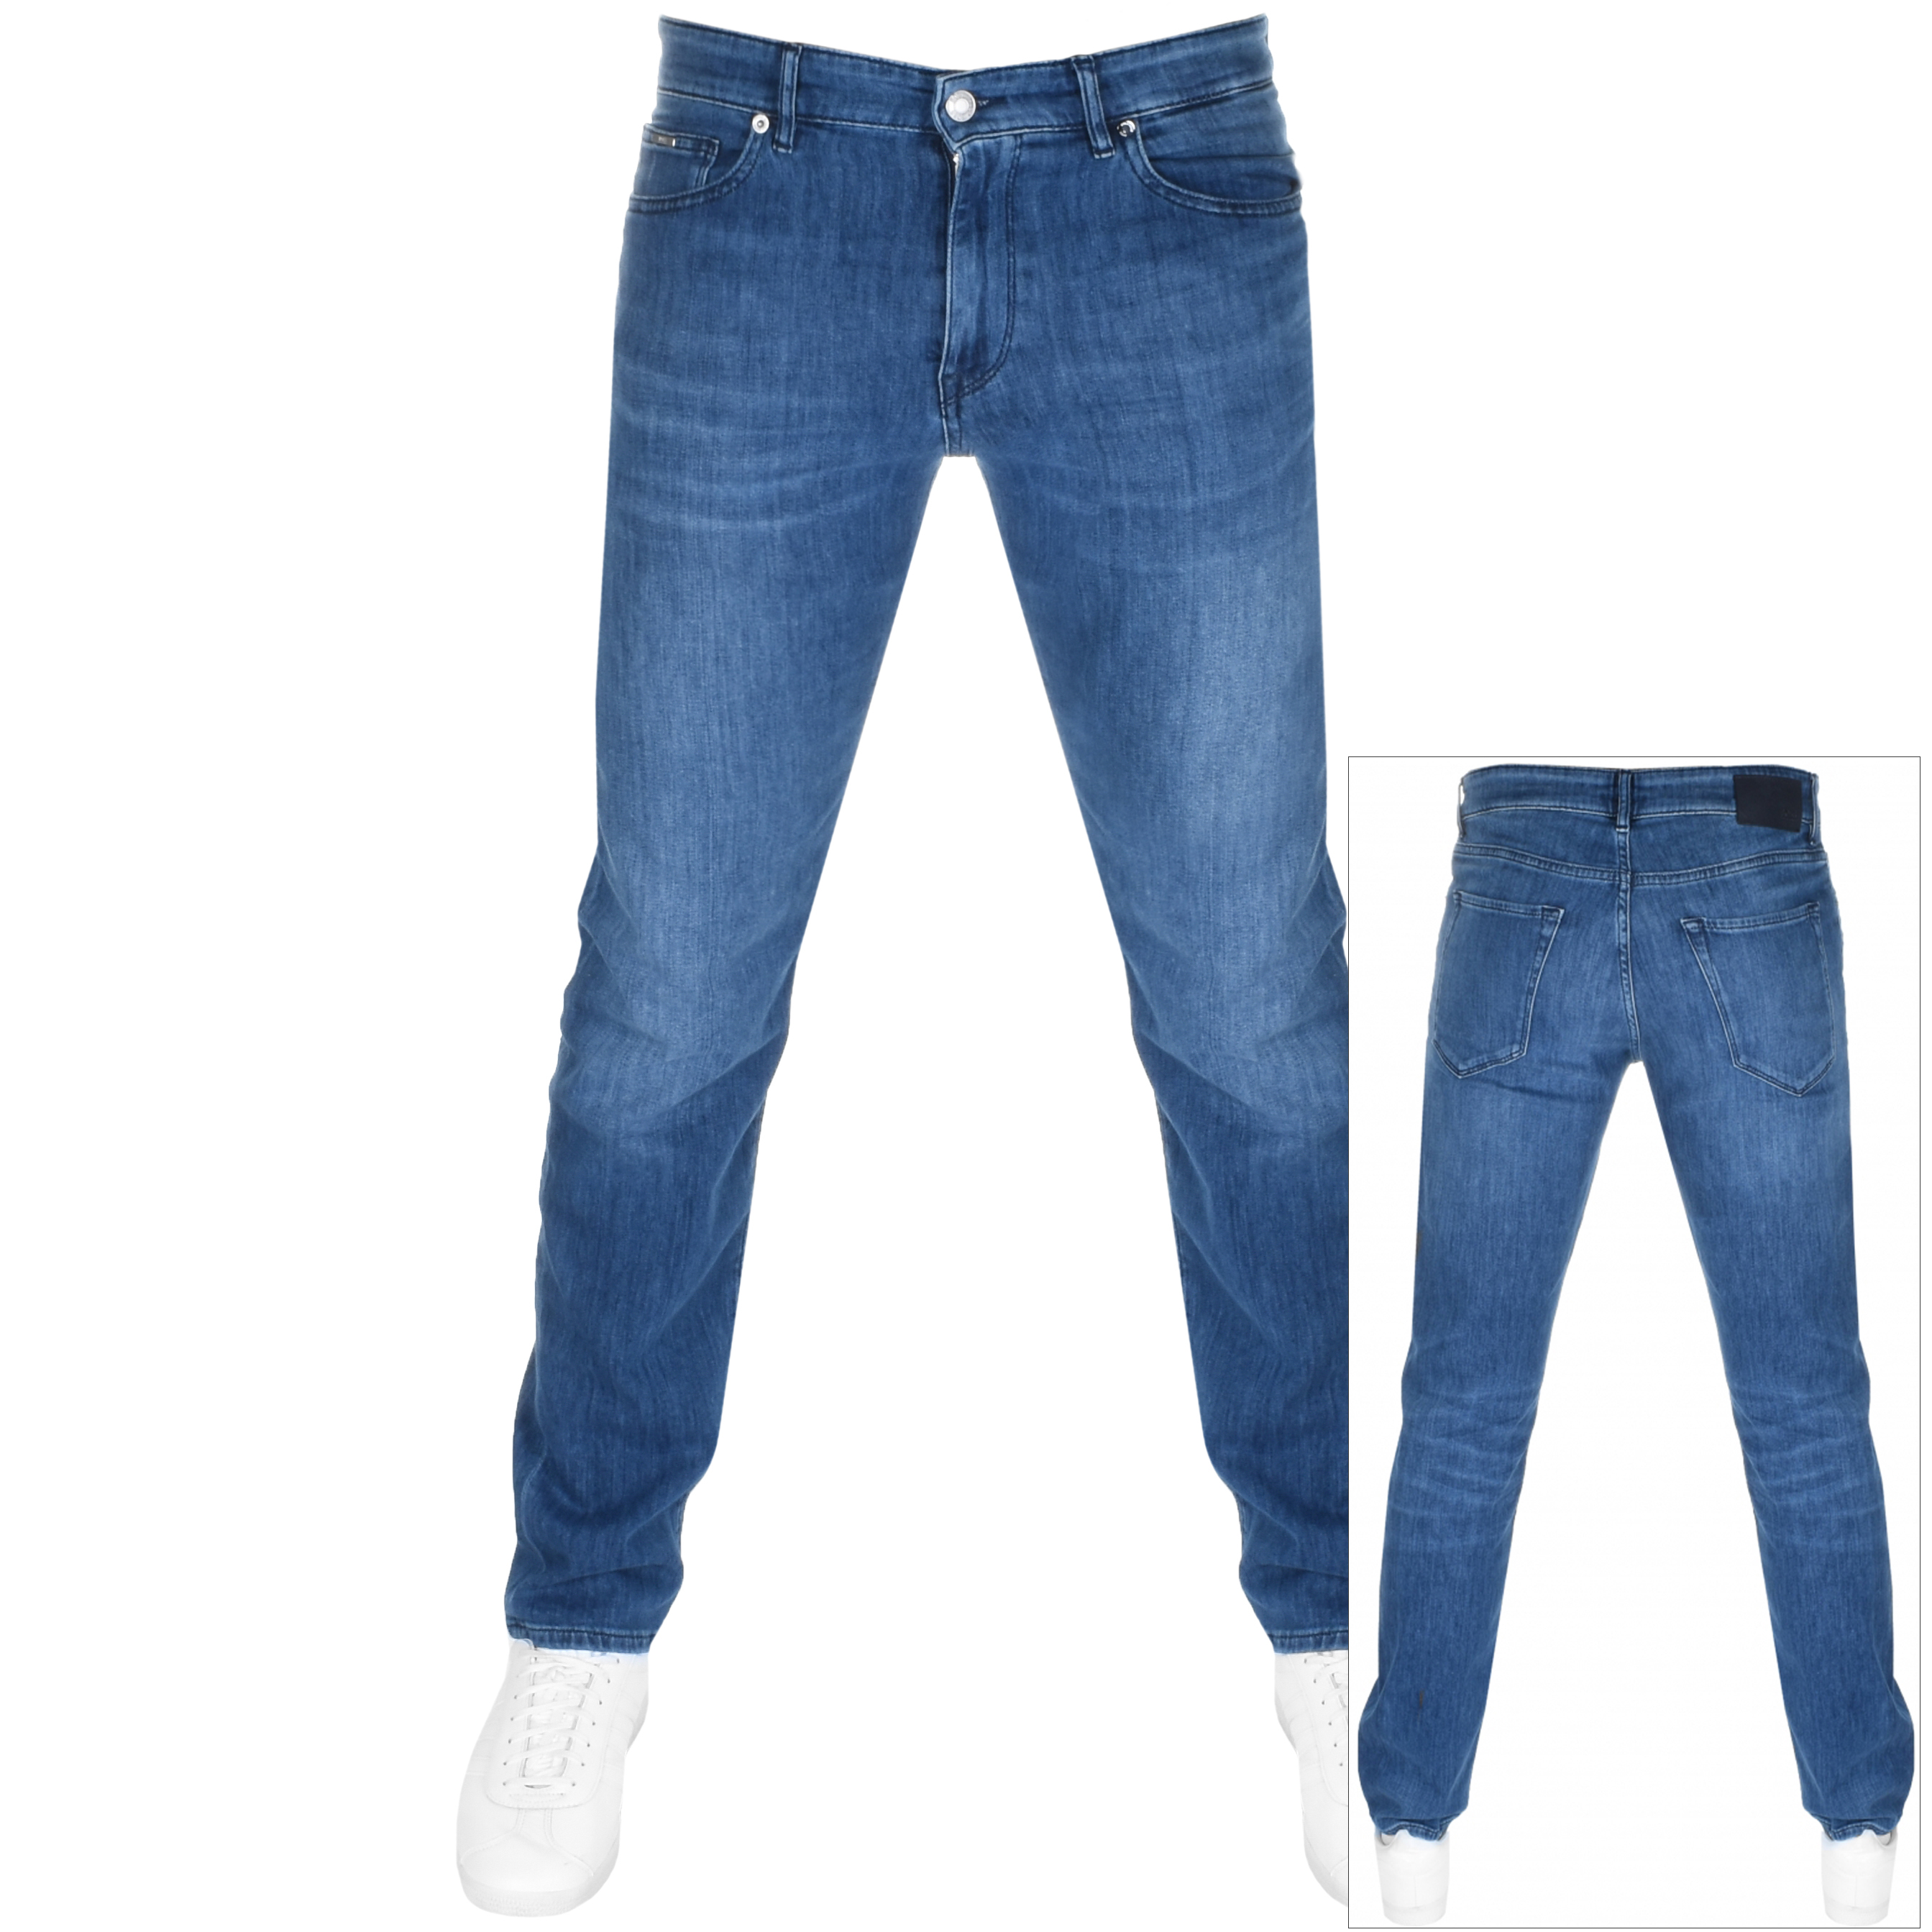 7c7e69fd Hugo Boss Jeans & Trousers | Boss Jeans | Mainline Menswear